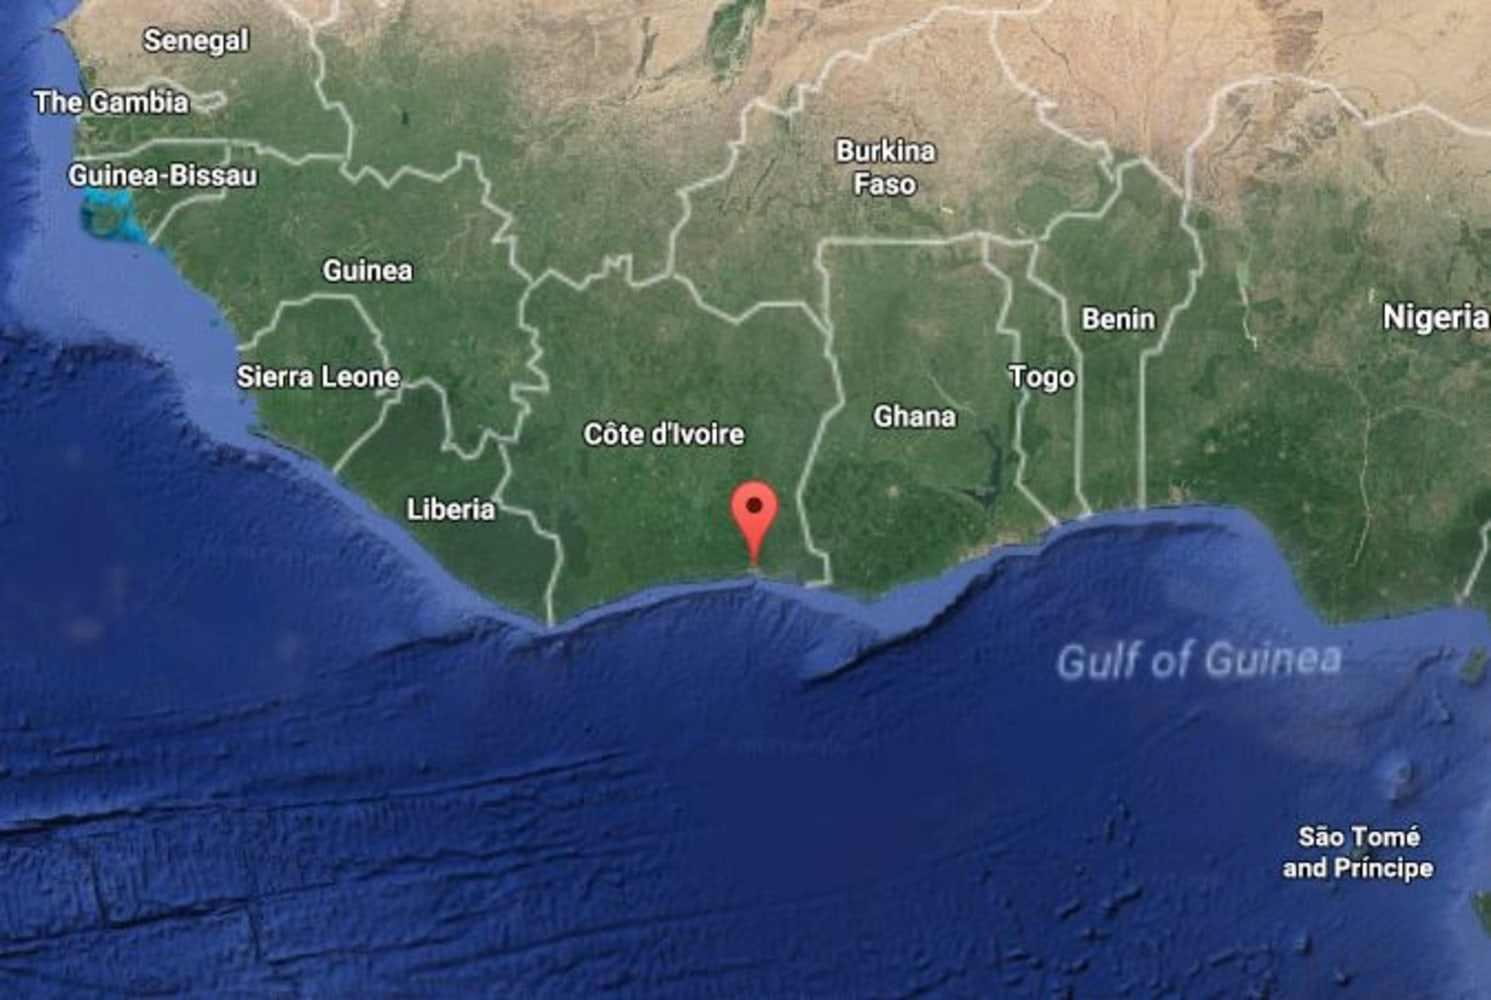 Cargo plane crashes in sea near Abidjan airport